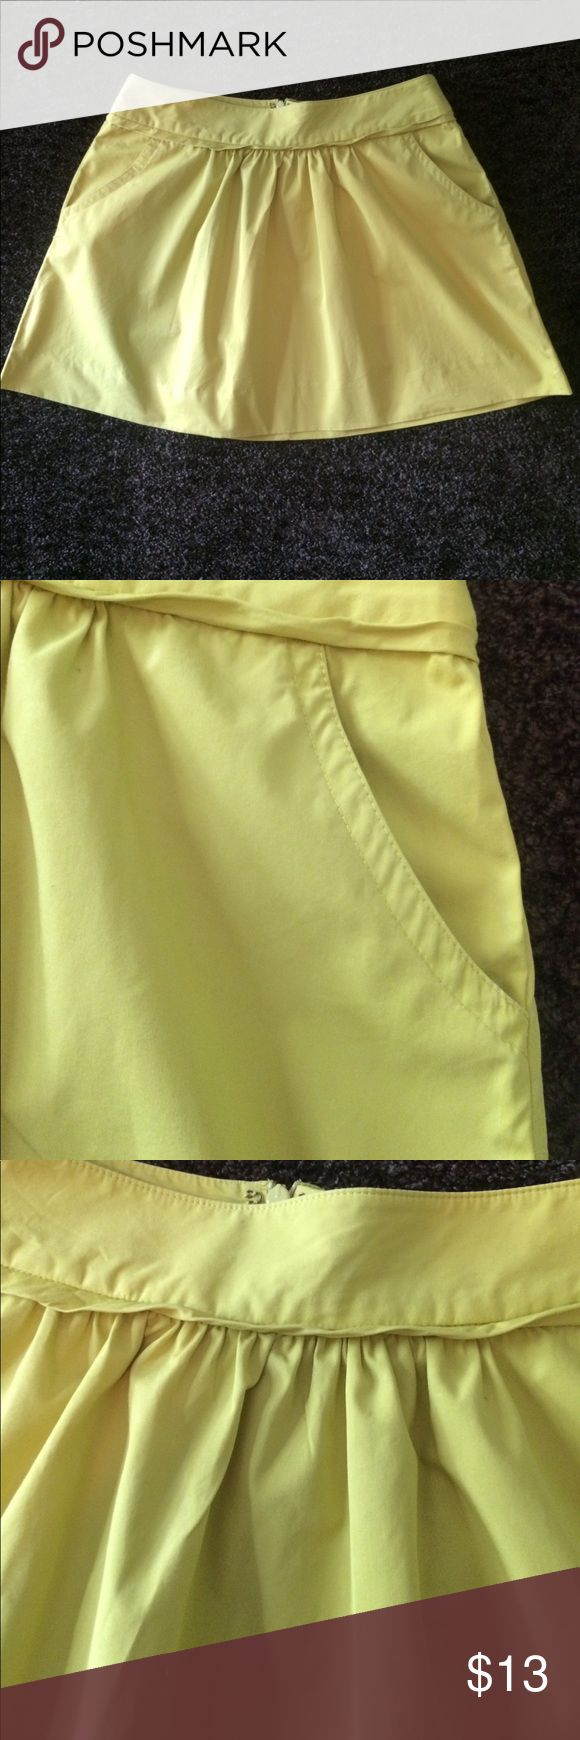 JCrew skirt Gently worn. Zip back and pockets. Color is a yellow/green. Close up pics are true color. Length is 15. Waist 28. J. Crew Skirts